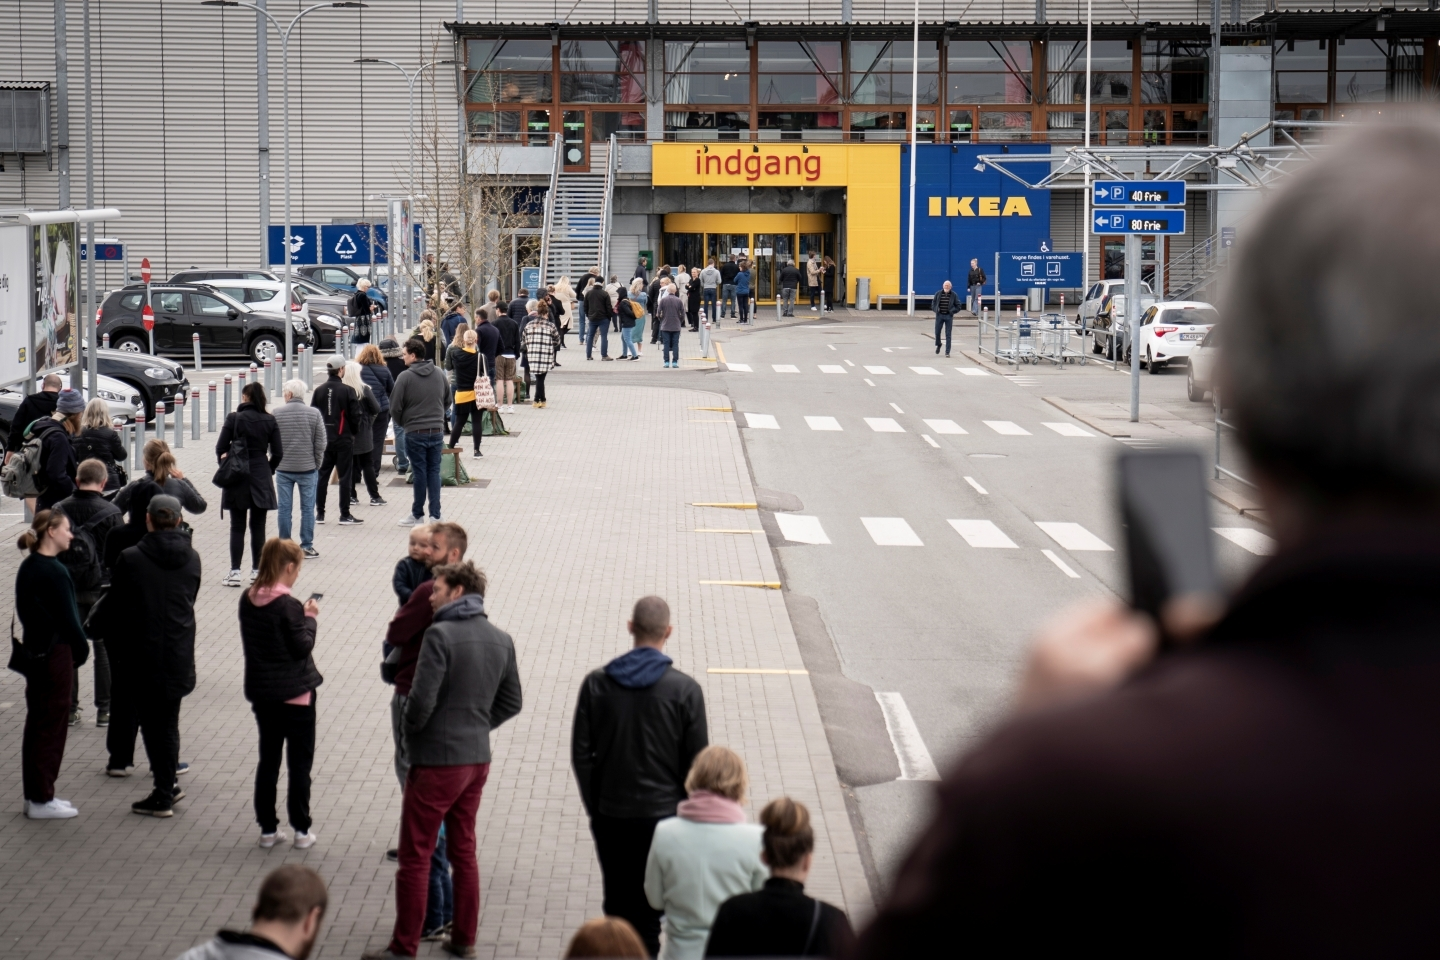 Ikea reopens their department store following the outbreak of the coronavirus disease (COVID-19) in Gentofte, near Copenhagen, Denmark on April 27, 2020. (Reuters/Ritzau Scanpix Denmark)